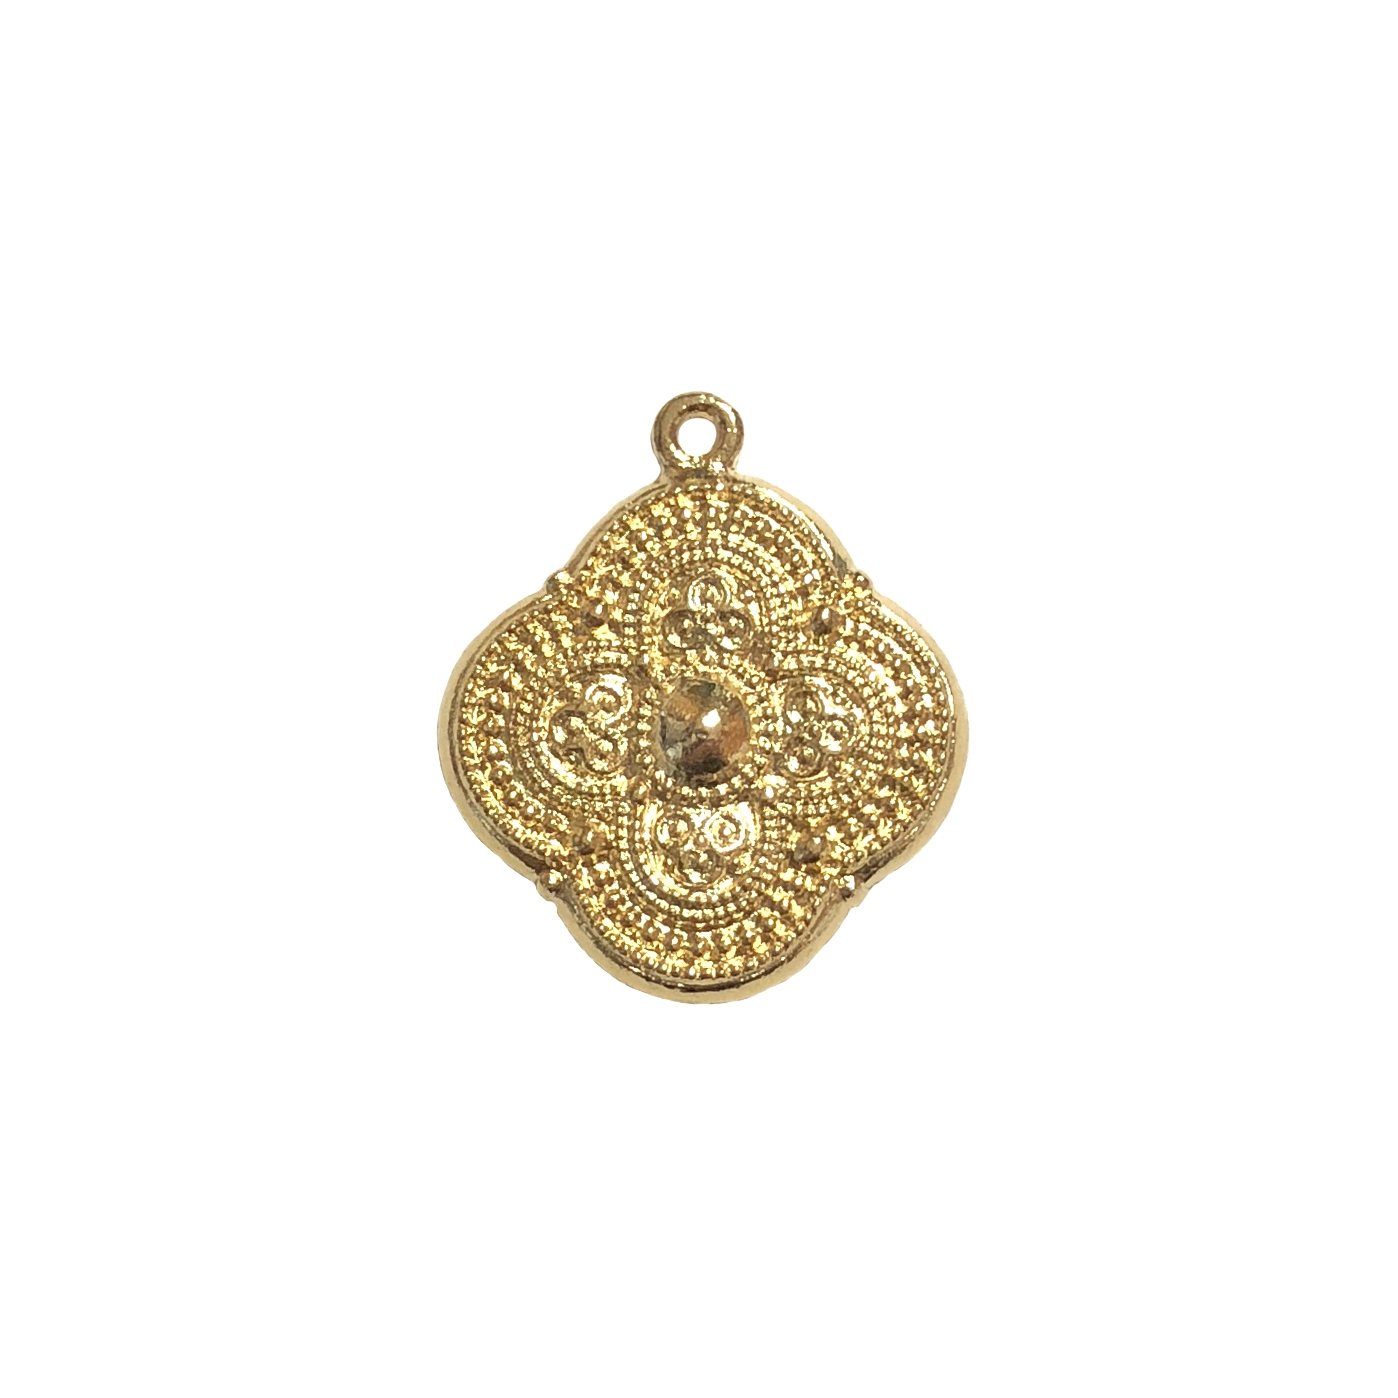 Victorian pendant drop, 22K gold finish pewter, pendant drop, drop, pendant, 22mm, Victorian style, lead free pewter, B'sue by 1928, vintage jewelry parts, pewter jewelry parts, US made, 1928 Company, designer jewelry, B'sue Boutiques, 08556